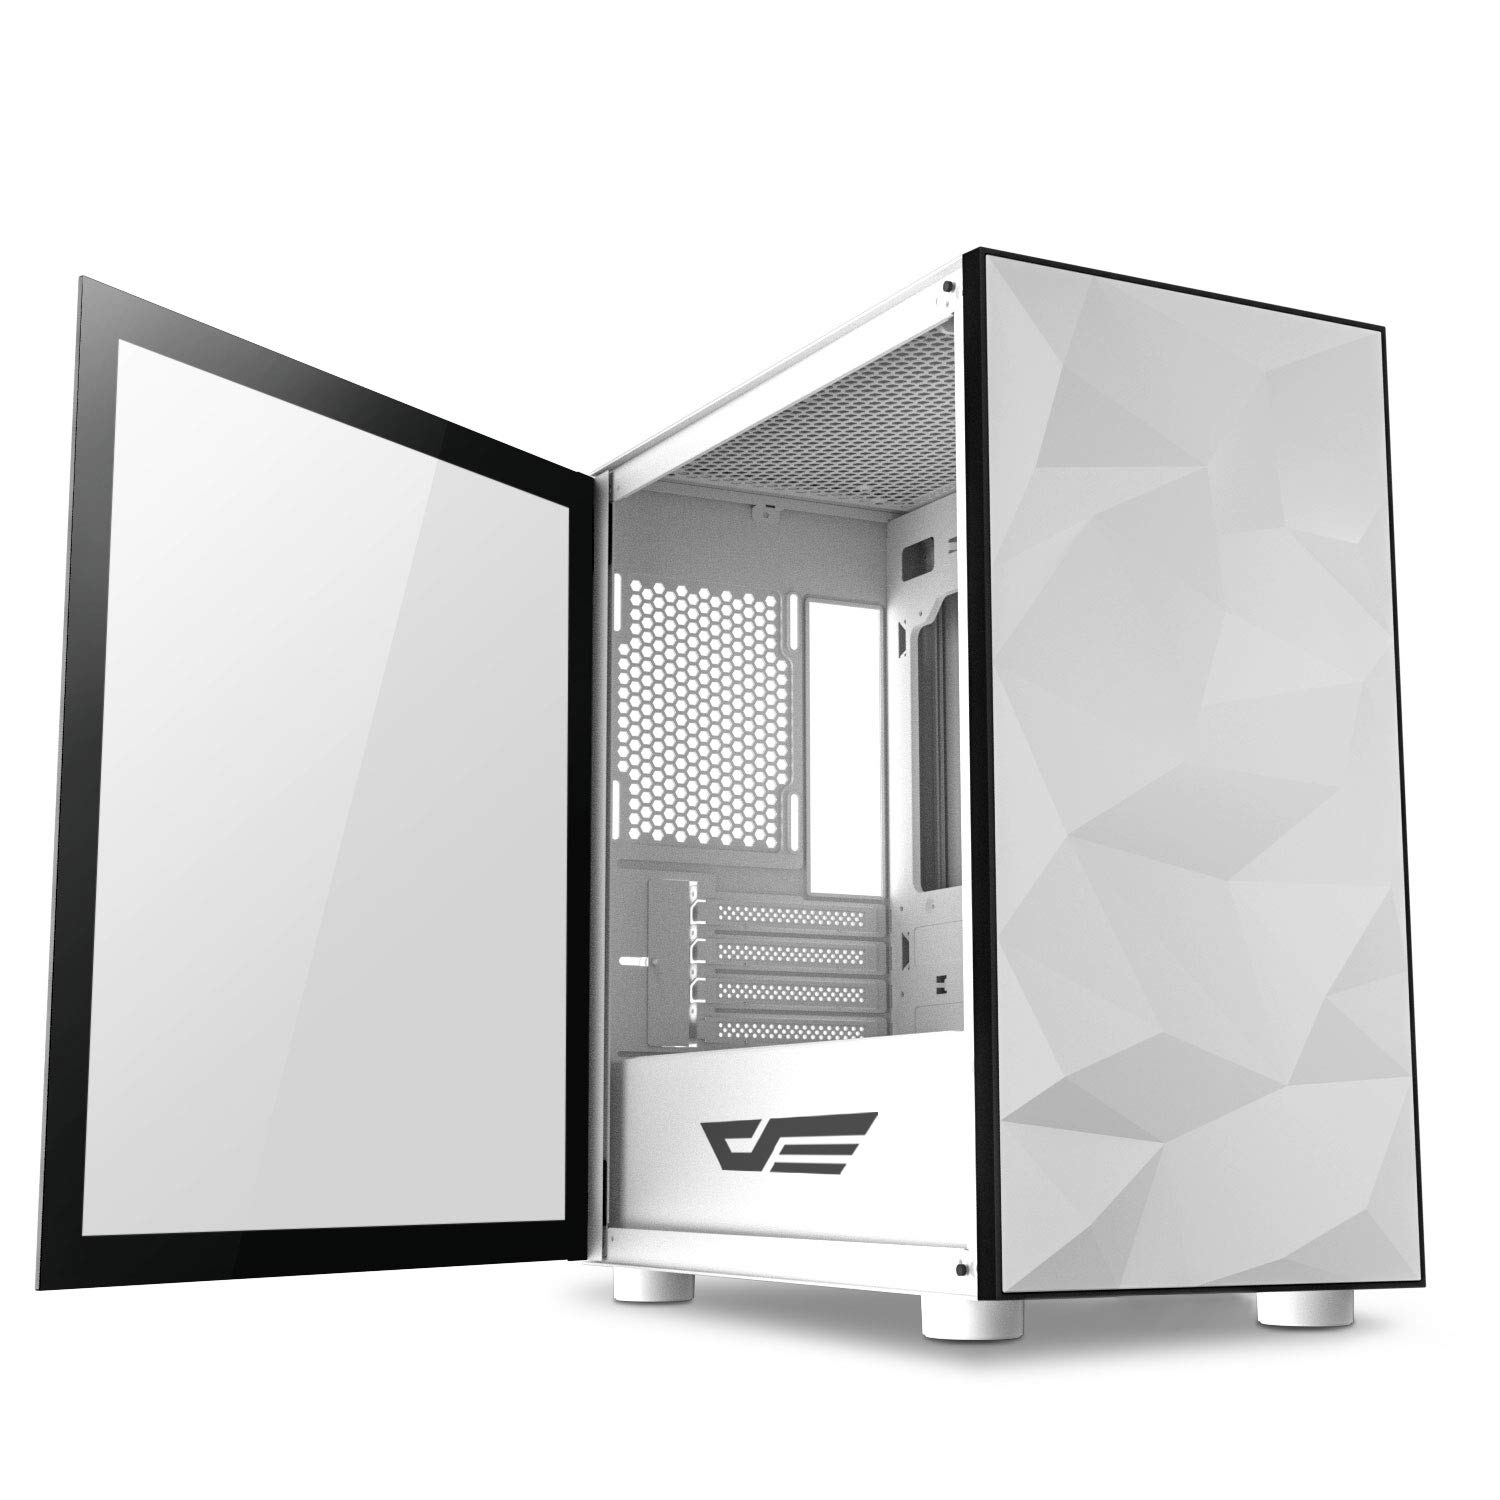 darkFlash Micro ATX Mini ITX Tower MicroATX Computer Case with Magnetic Design Wide Open Door Opening Swing Type Tempered Glass Side Panel (DLM21 White) by darkFlash